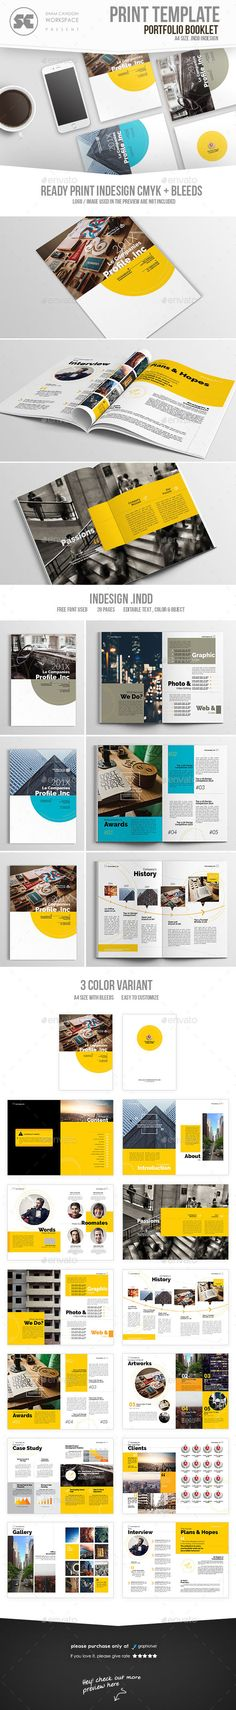 Brand Identity Guidelines, The Company Profile Company profile - company profile templates word